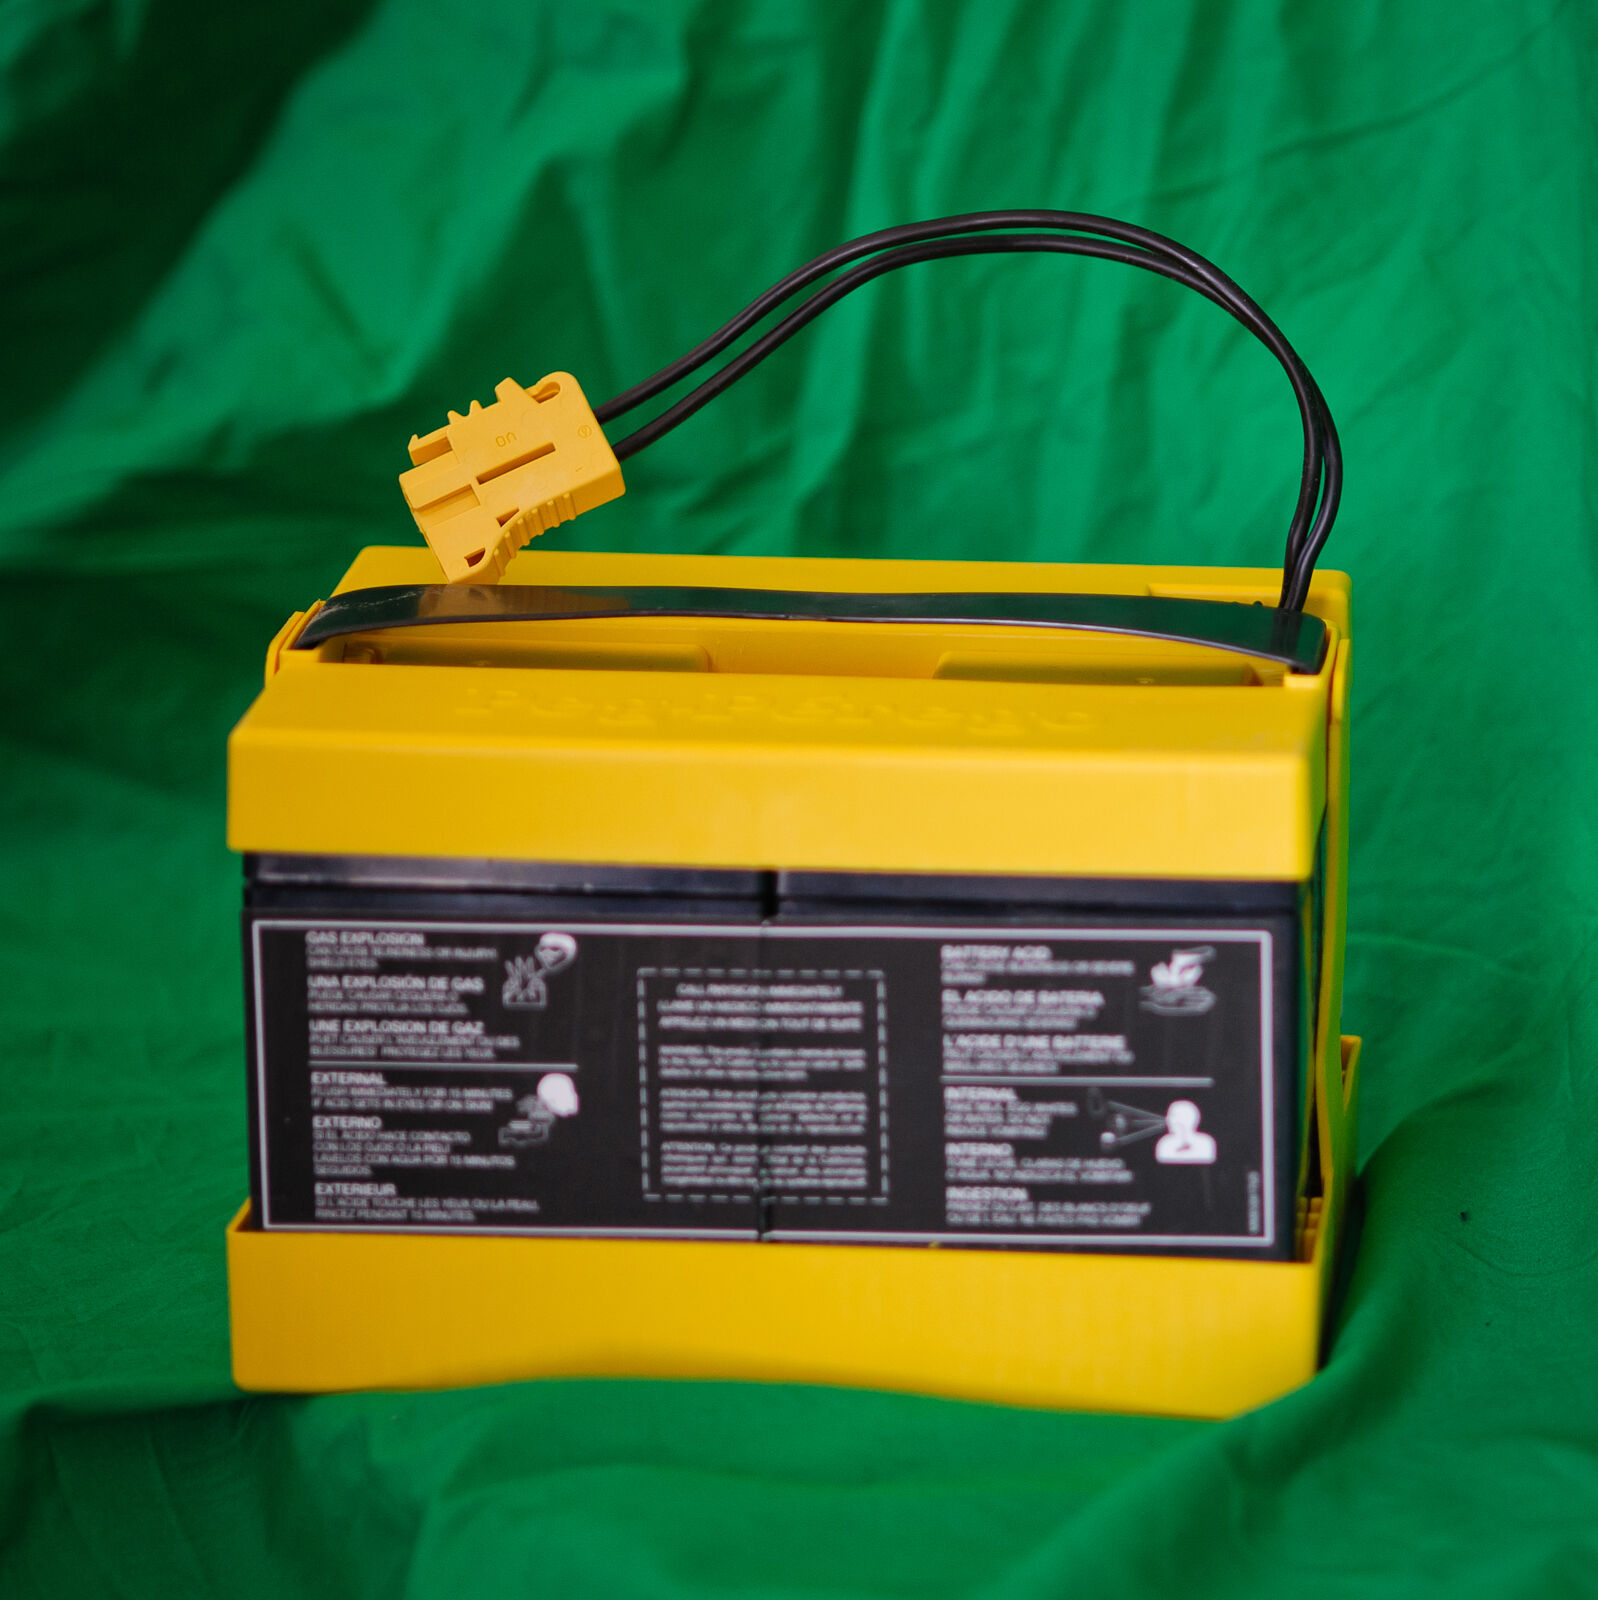 Peg perego 24 volt battery super power part iakb0522 24v ebay publicscrutiny Images